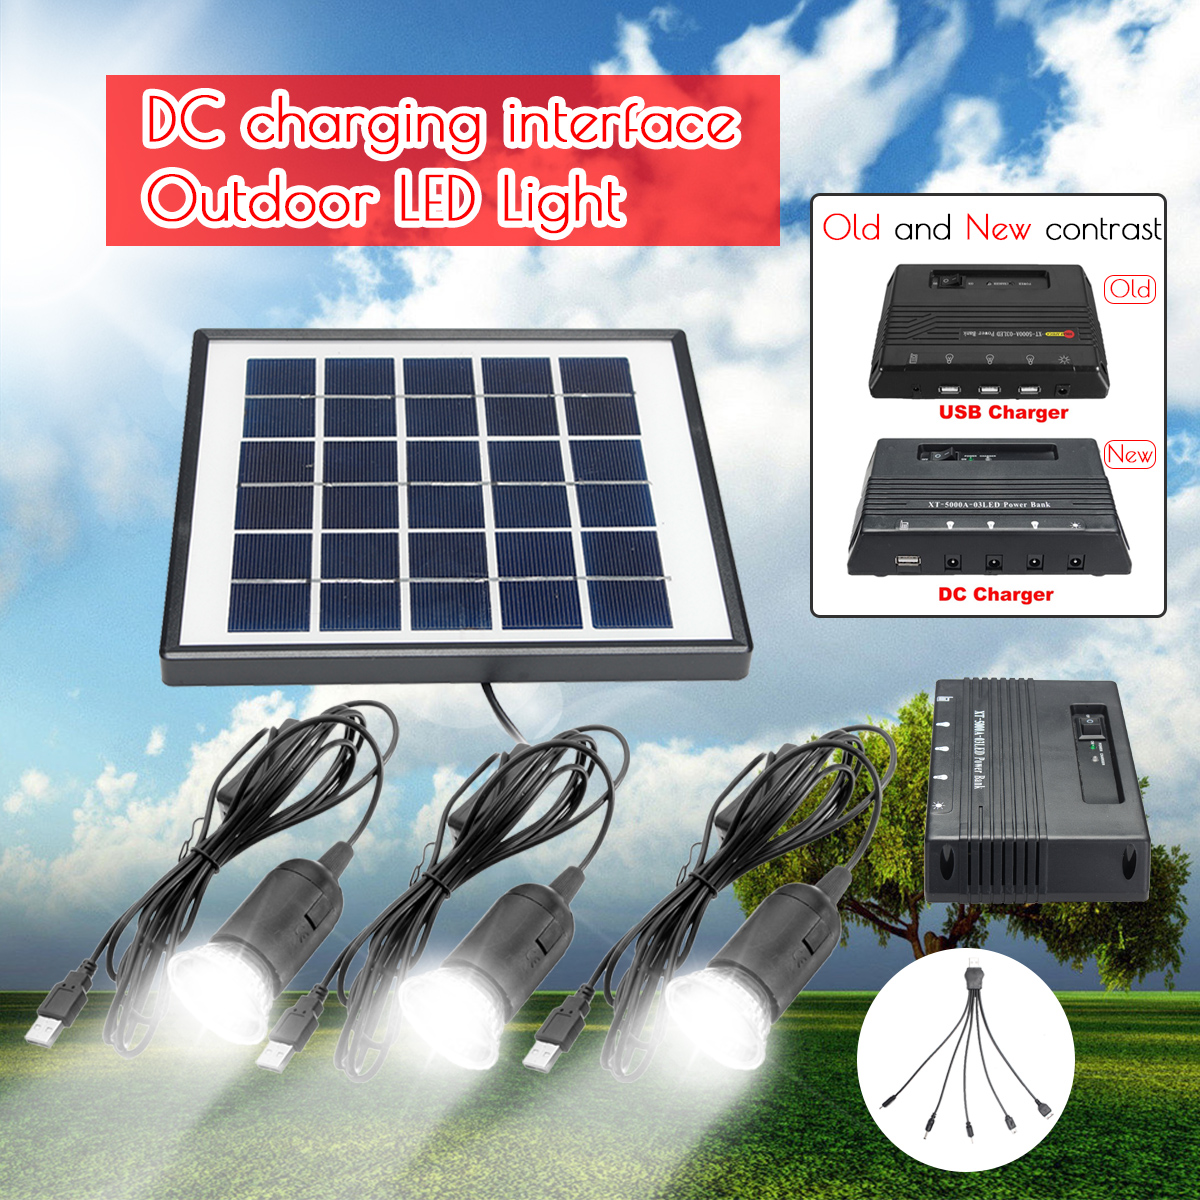 3pcs 1W Solar Lamp LED Garden Light Outdoor Lampe Solaire +5000mAh DC Power Bank + 6V 4W Solar Panel + For Outdoor Camping sp5000c environmental protection energy saving 5000mah solar charger power bank black